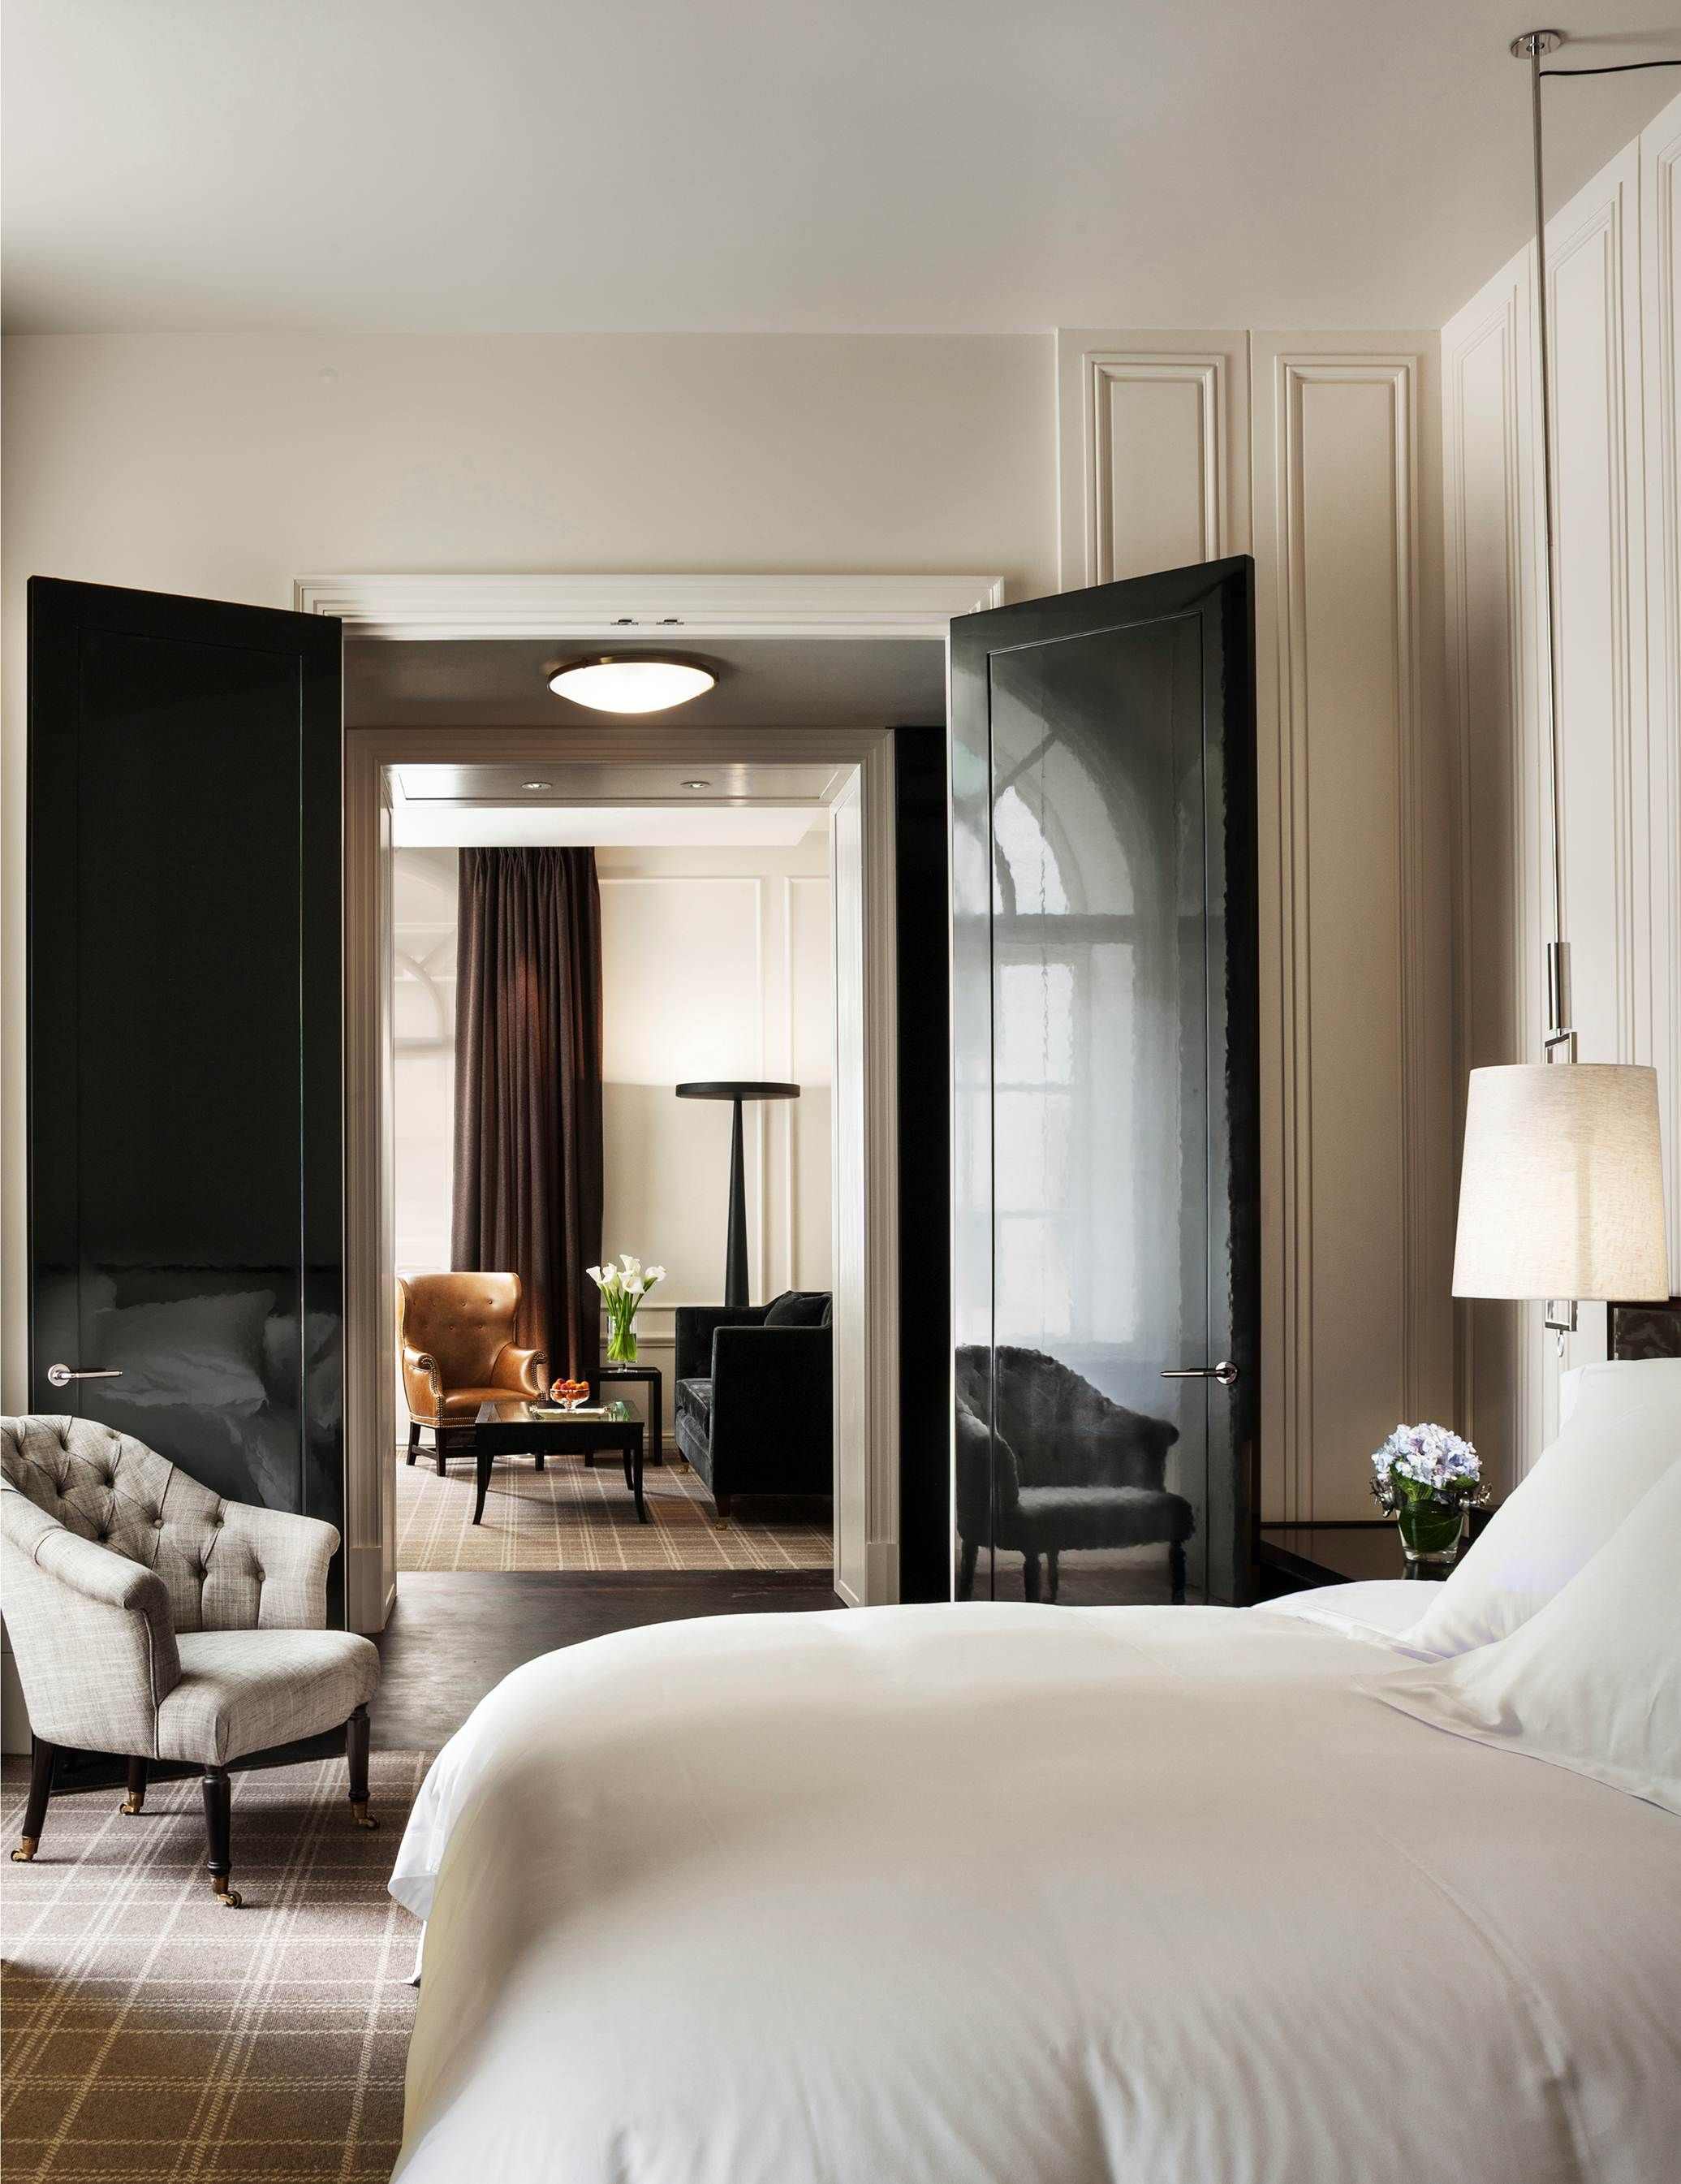 The Rosewood London Effortlessly Combines English Heritage